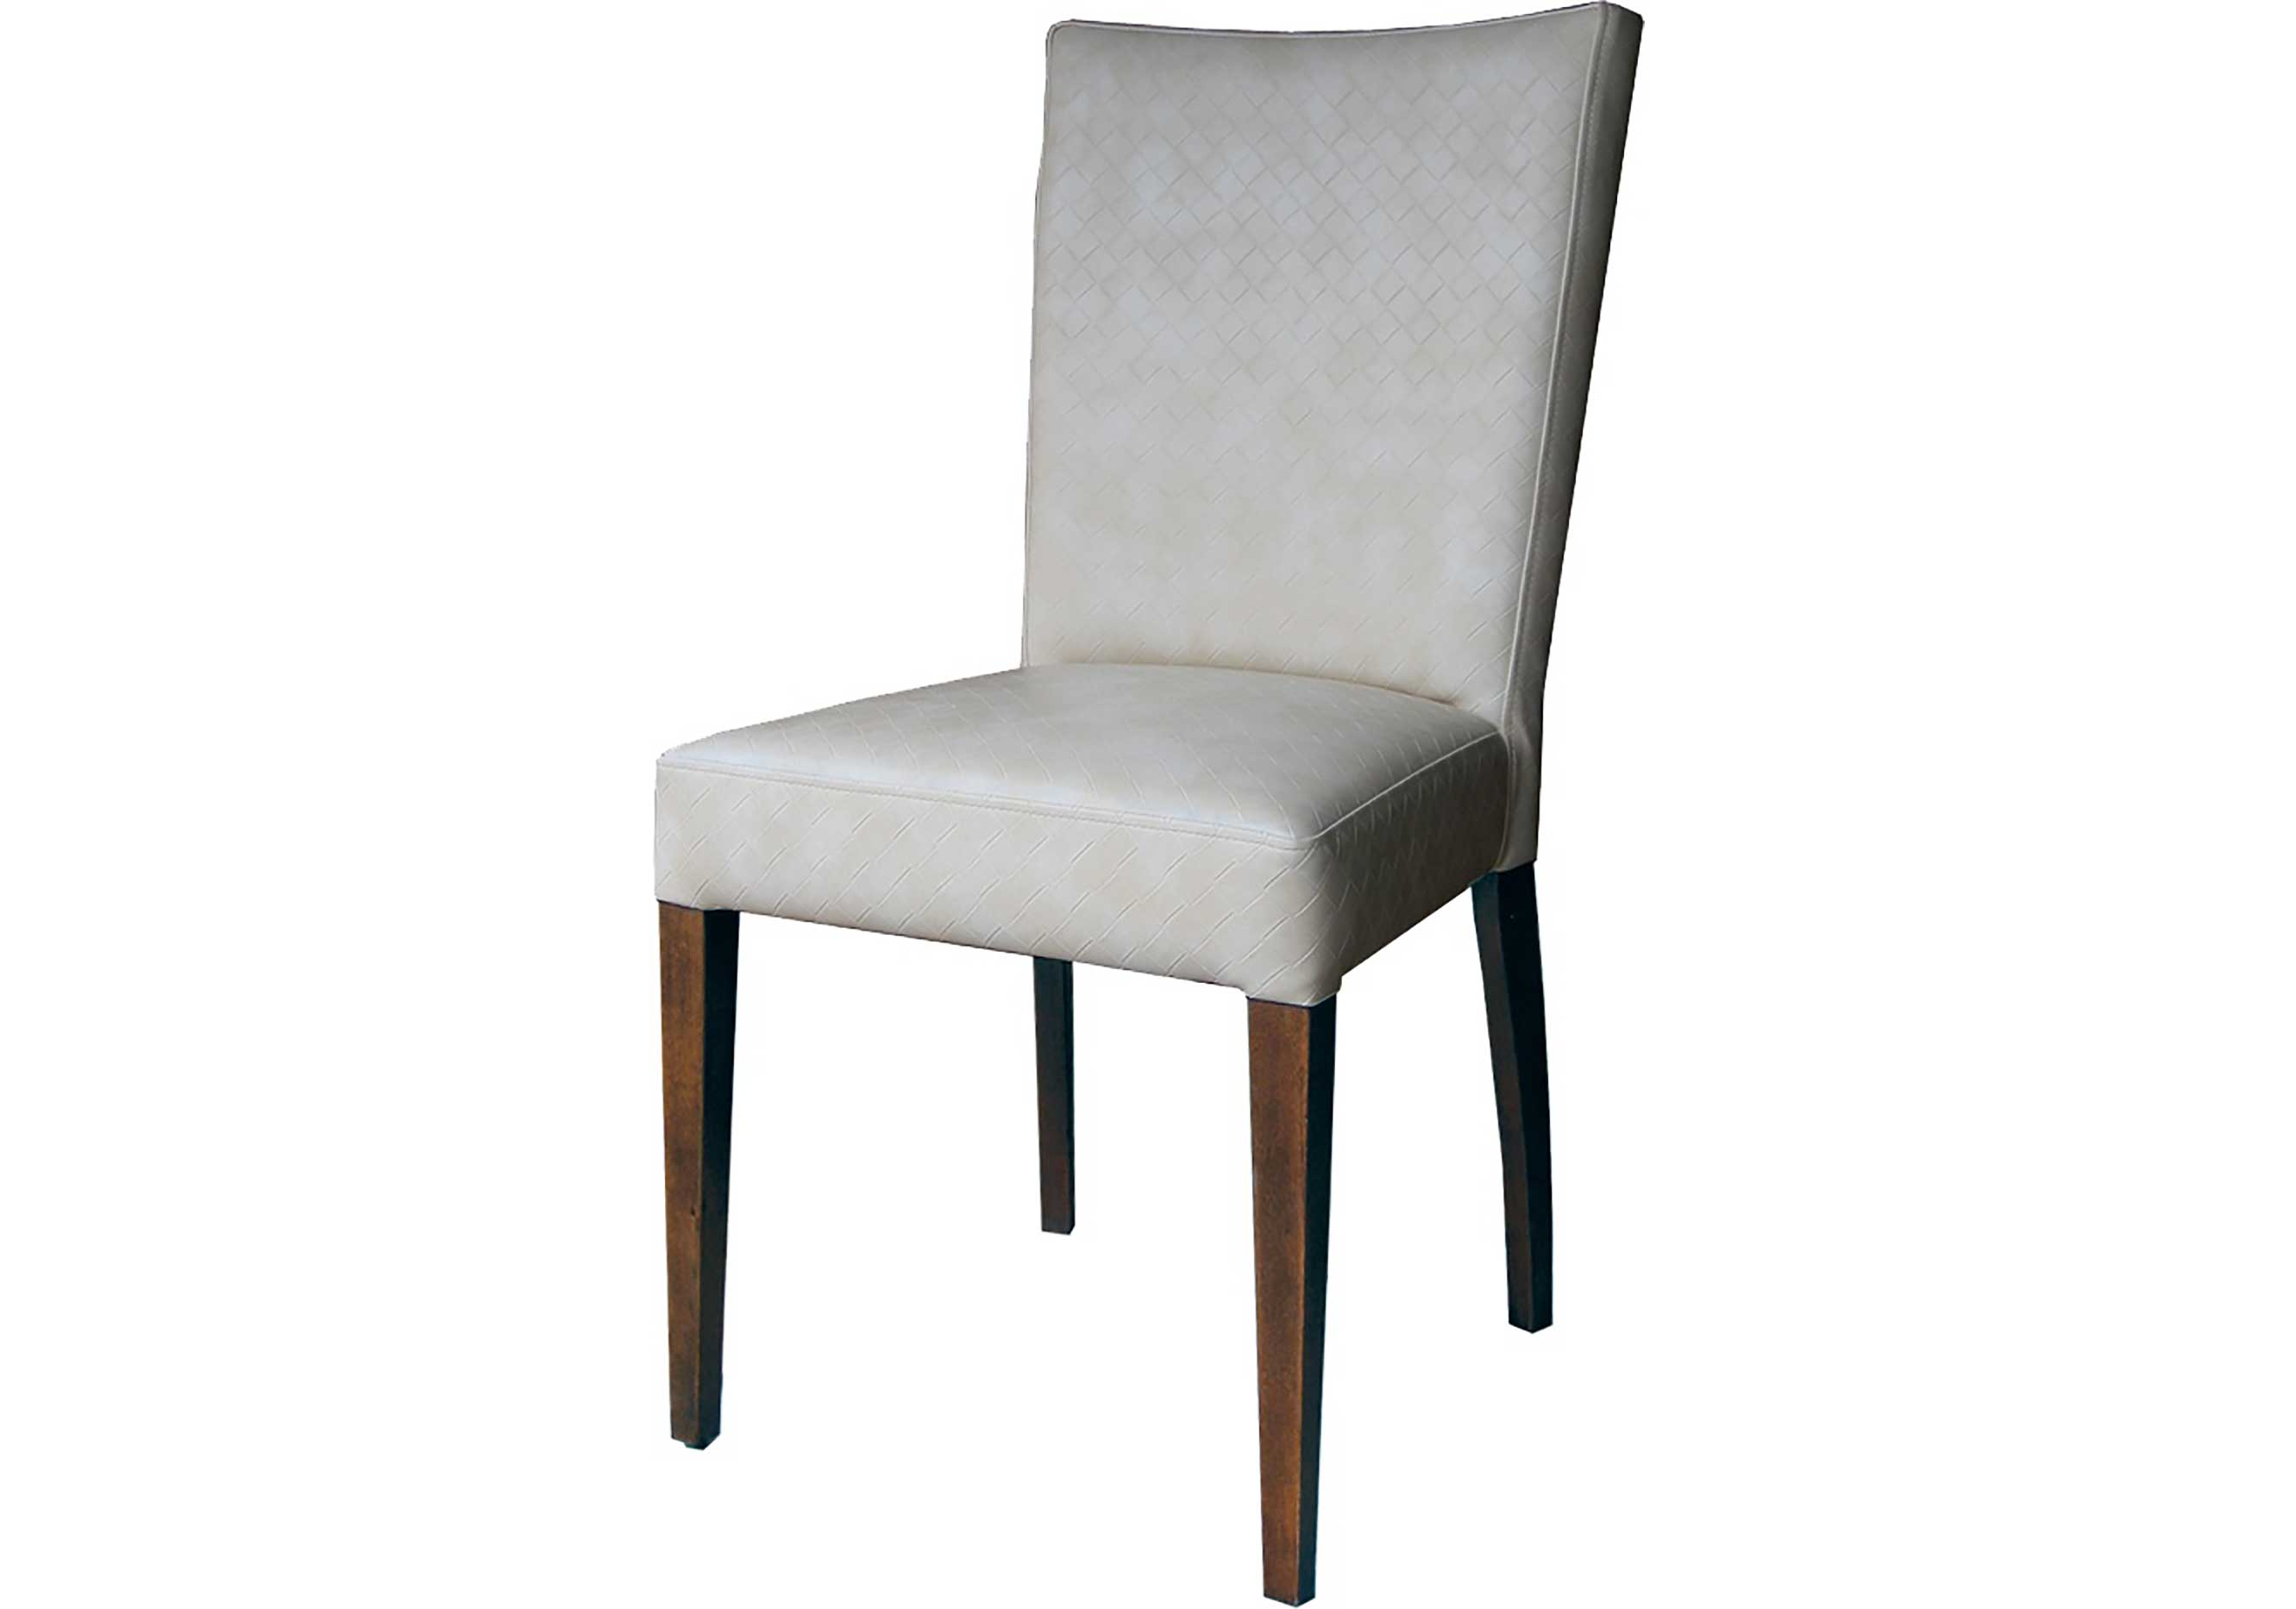 Chairs C-220